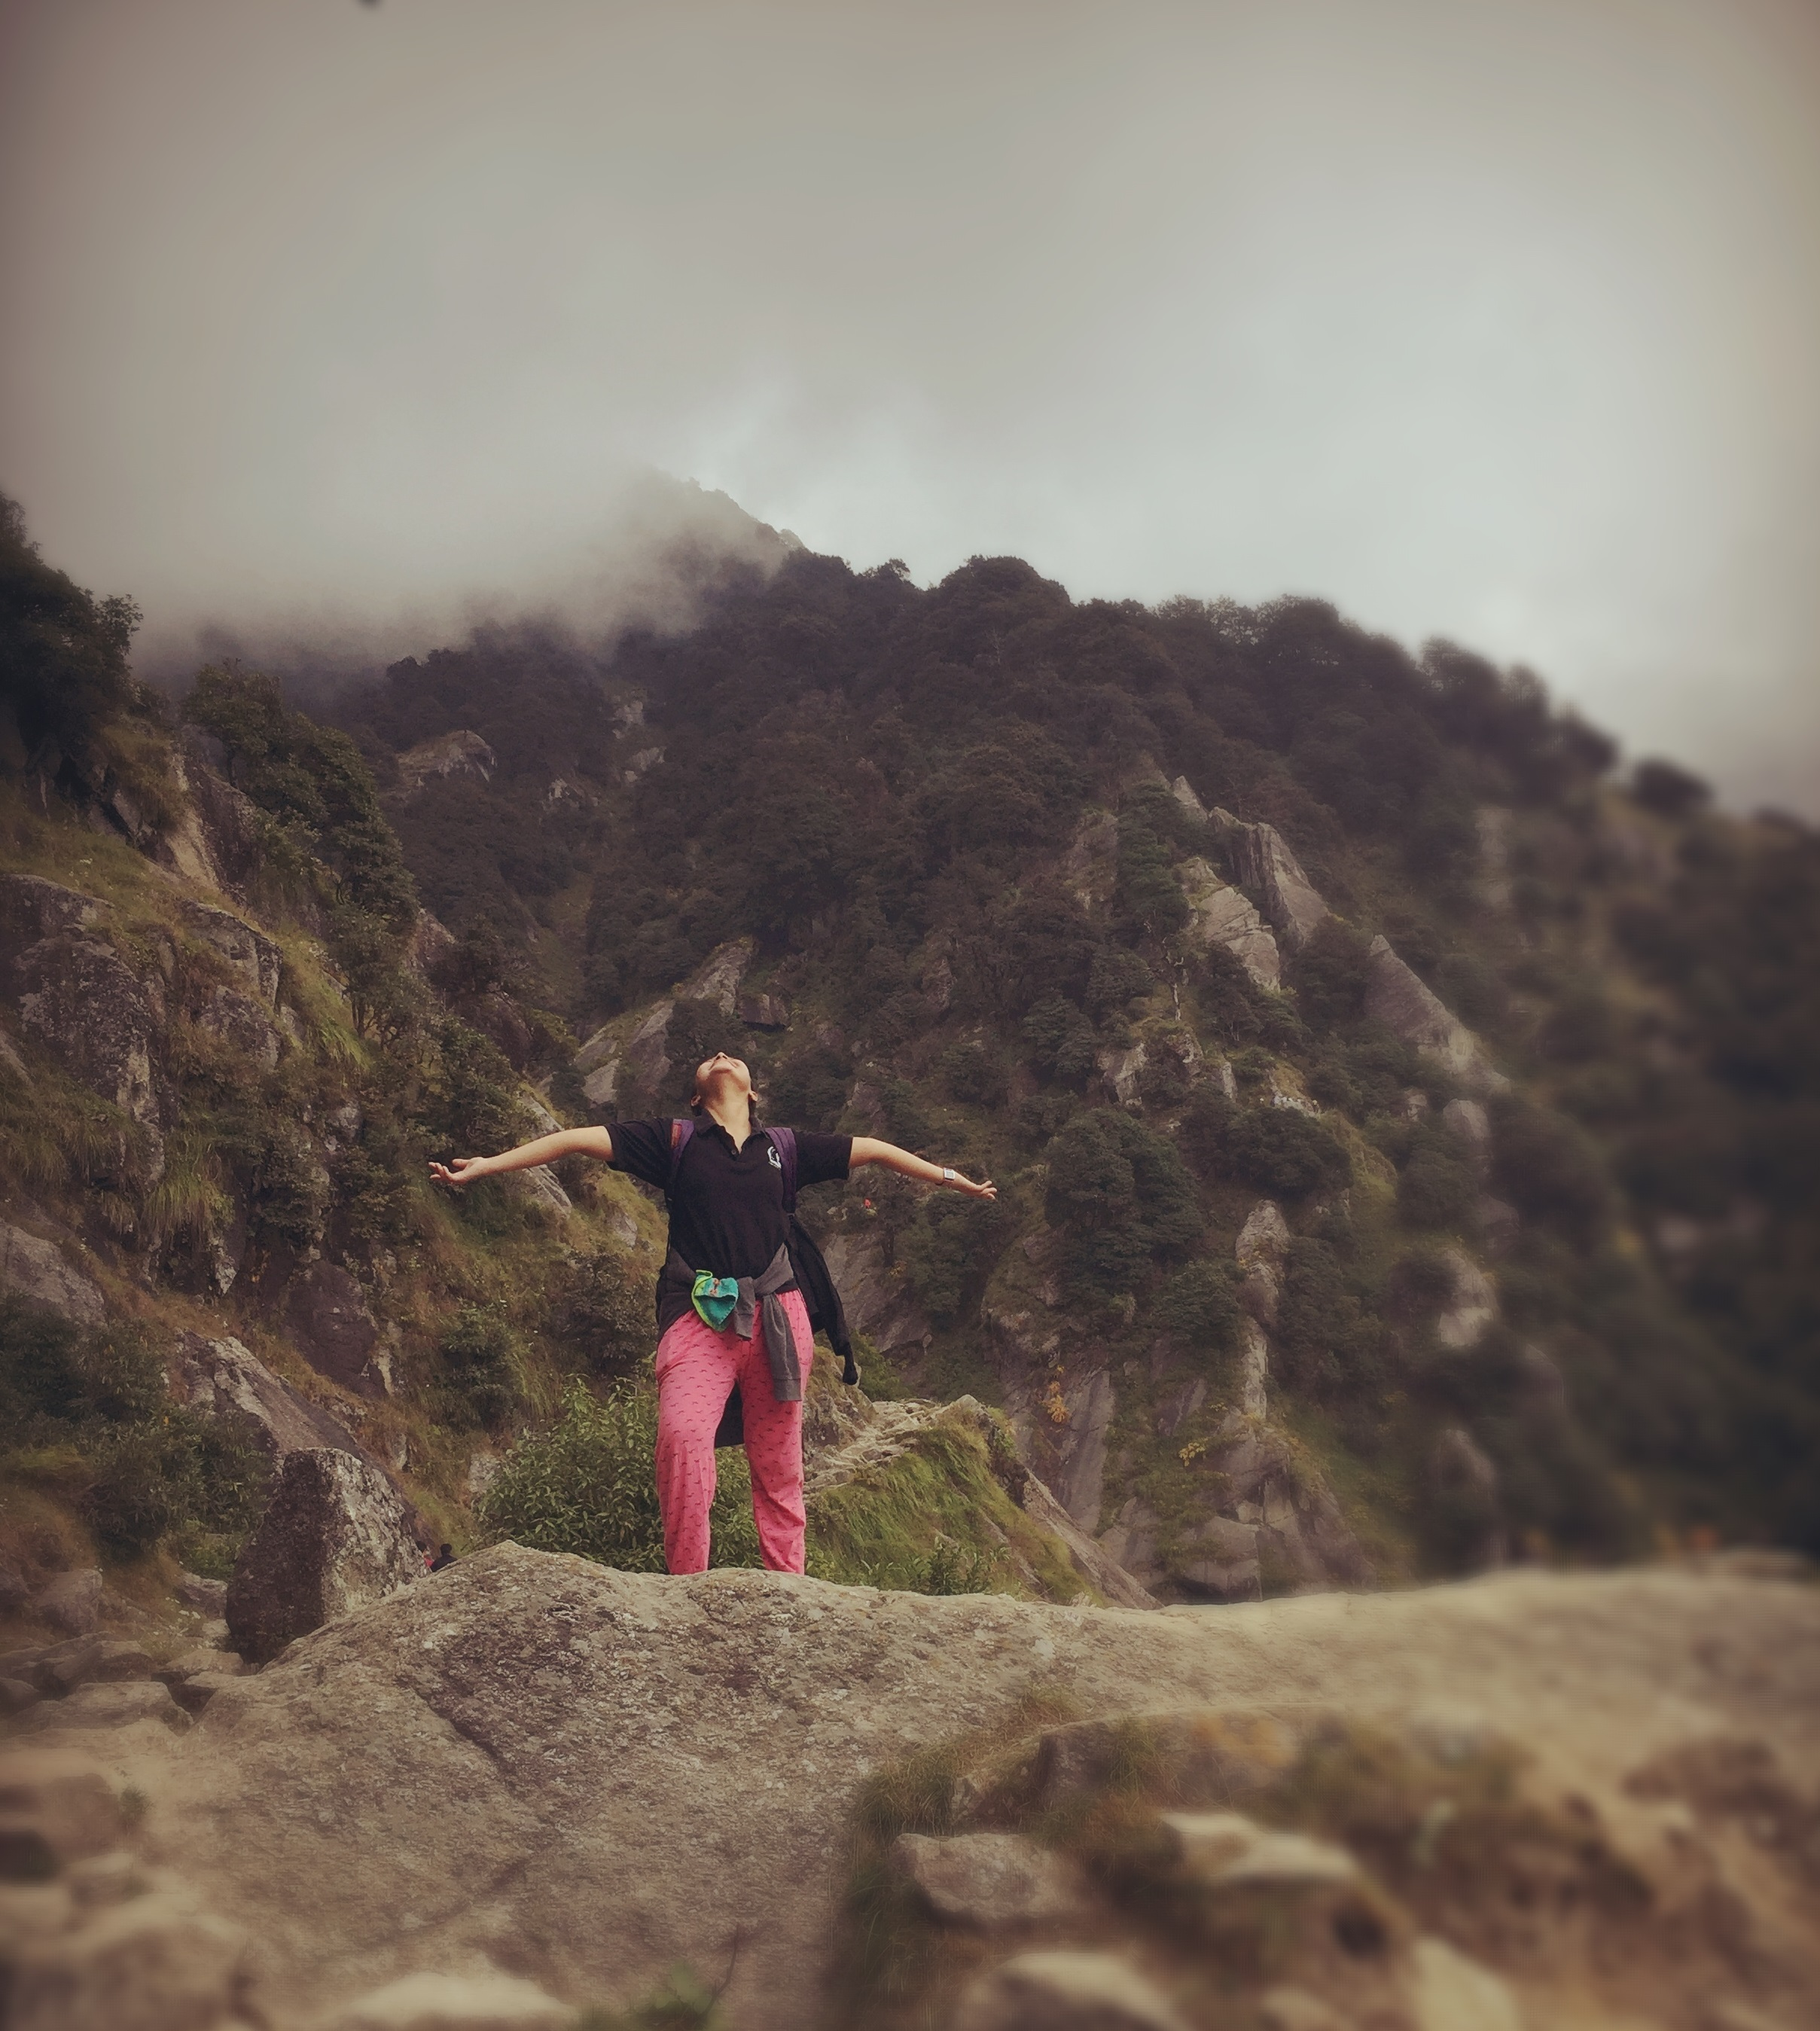 Liberation on hills. This is from my first trek to Triund